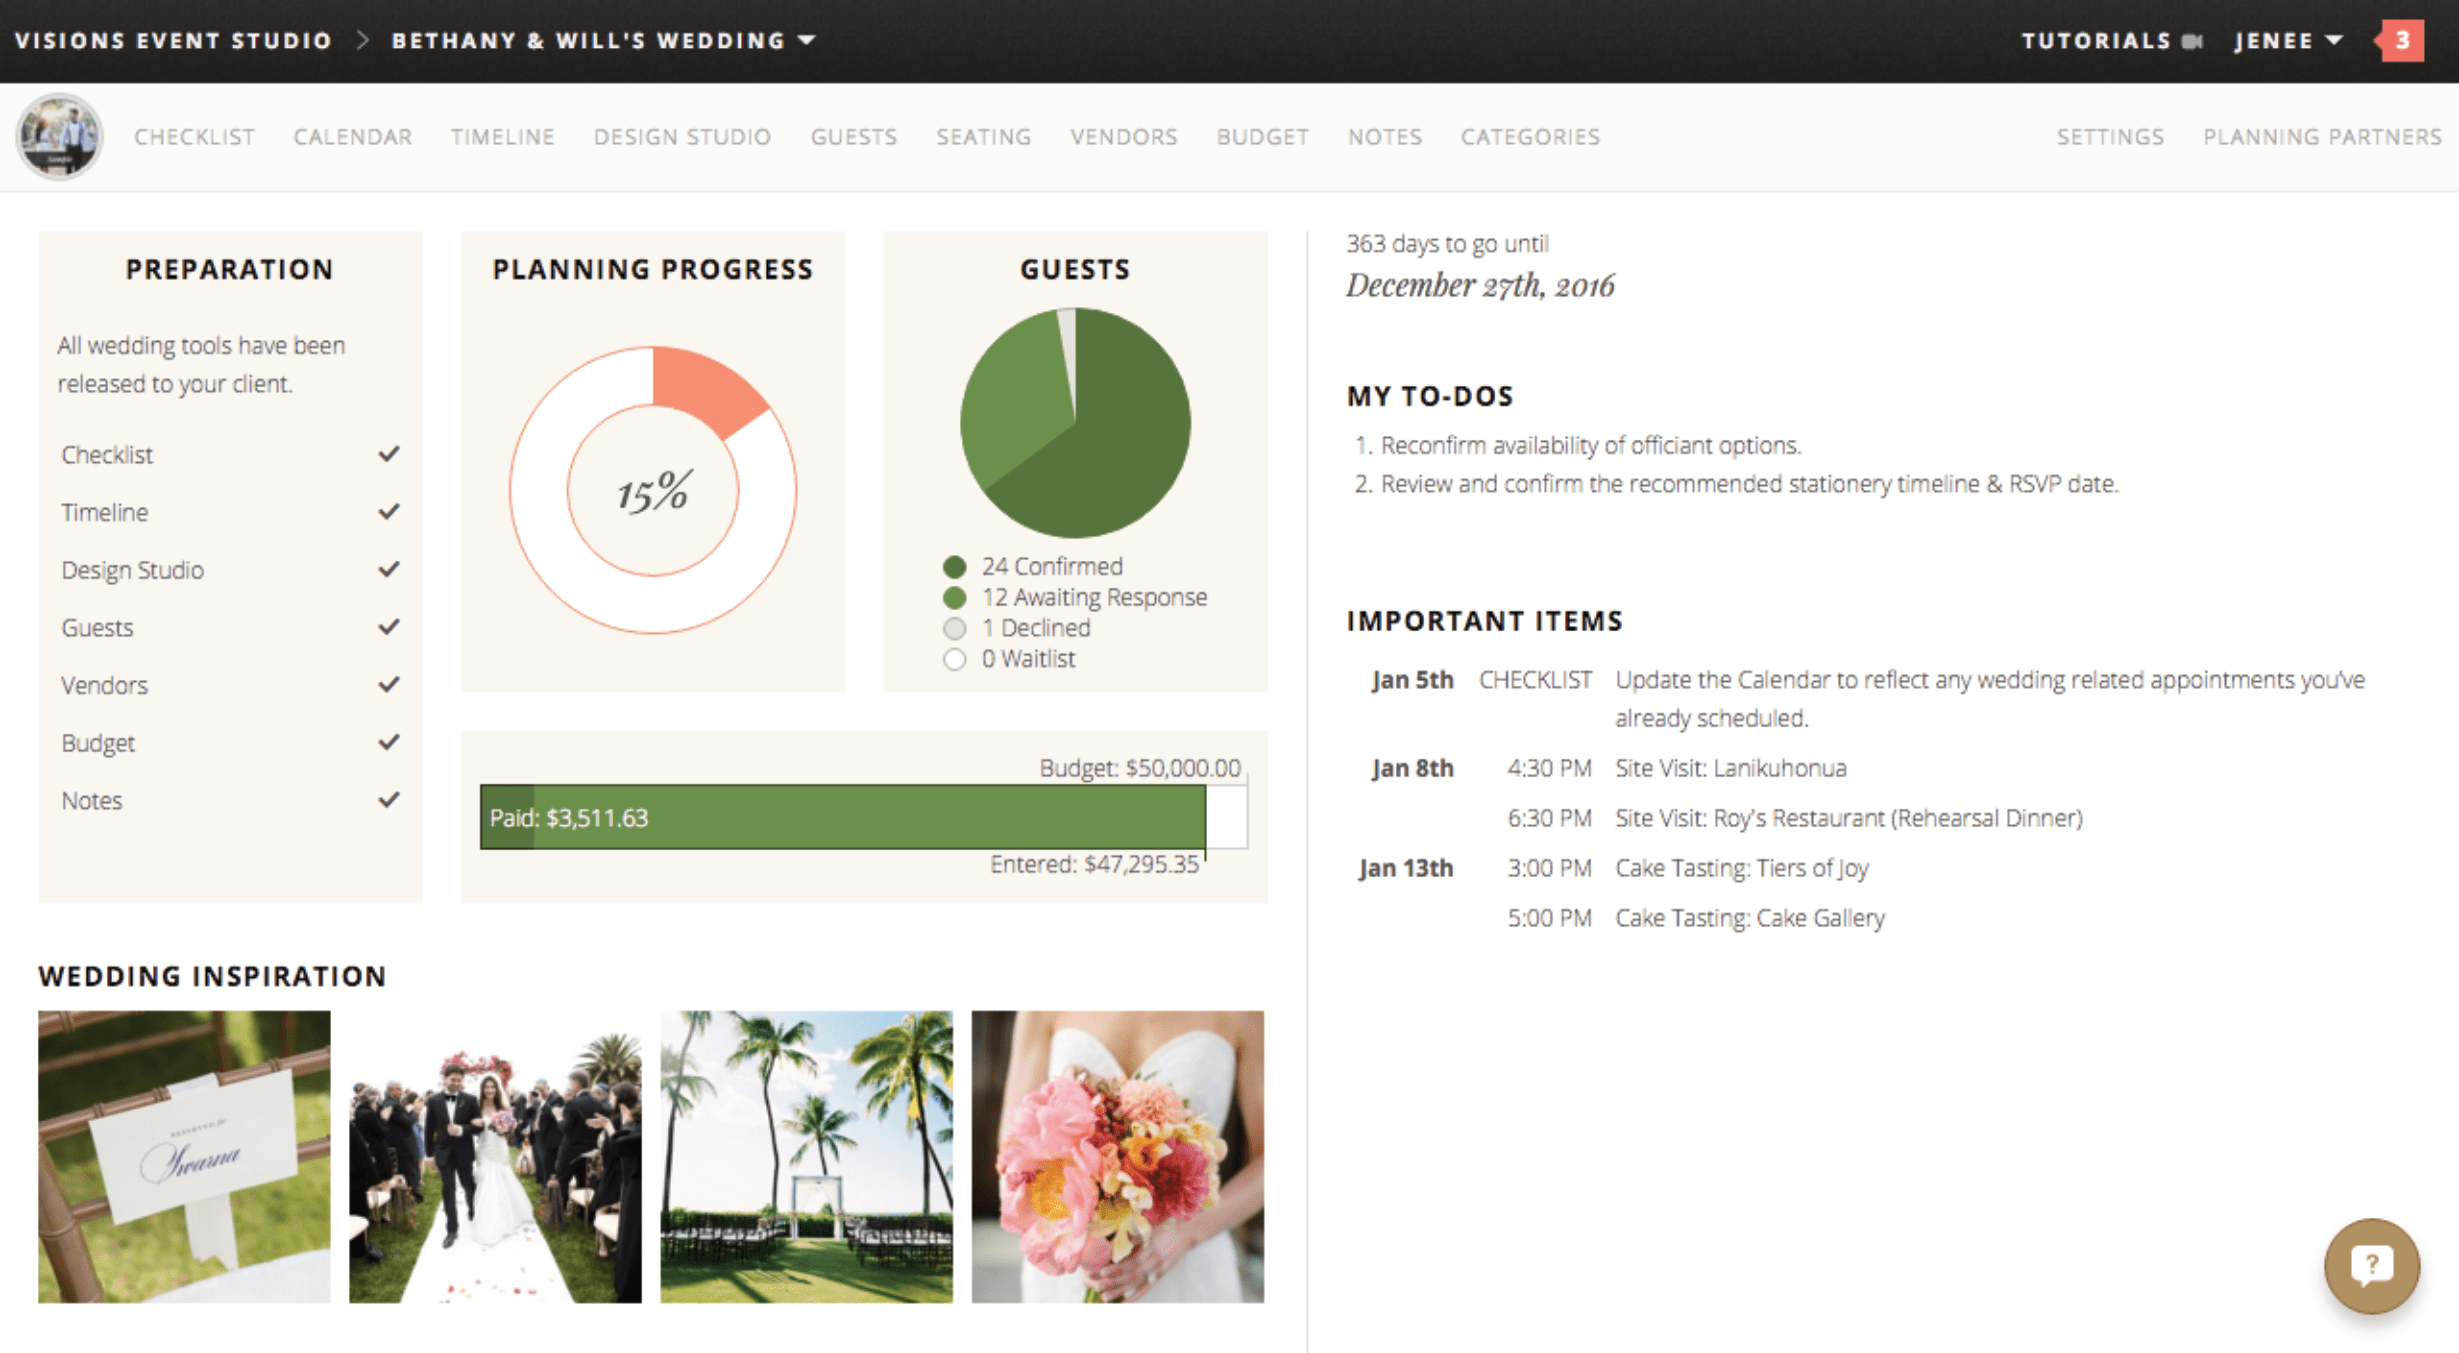 image regarding The Simplified Planner App named Business enterprise Equipment Wedding ceremony Planners Retain the services of - Visions Function Studio